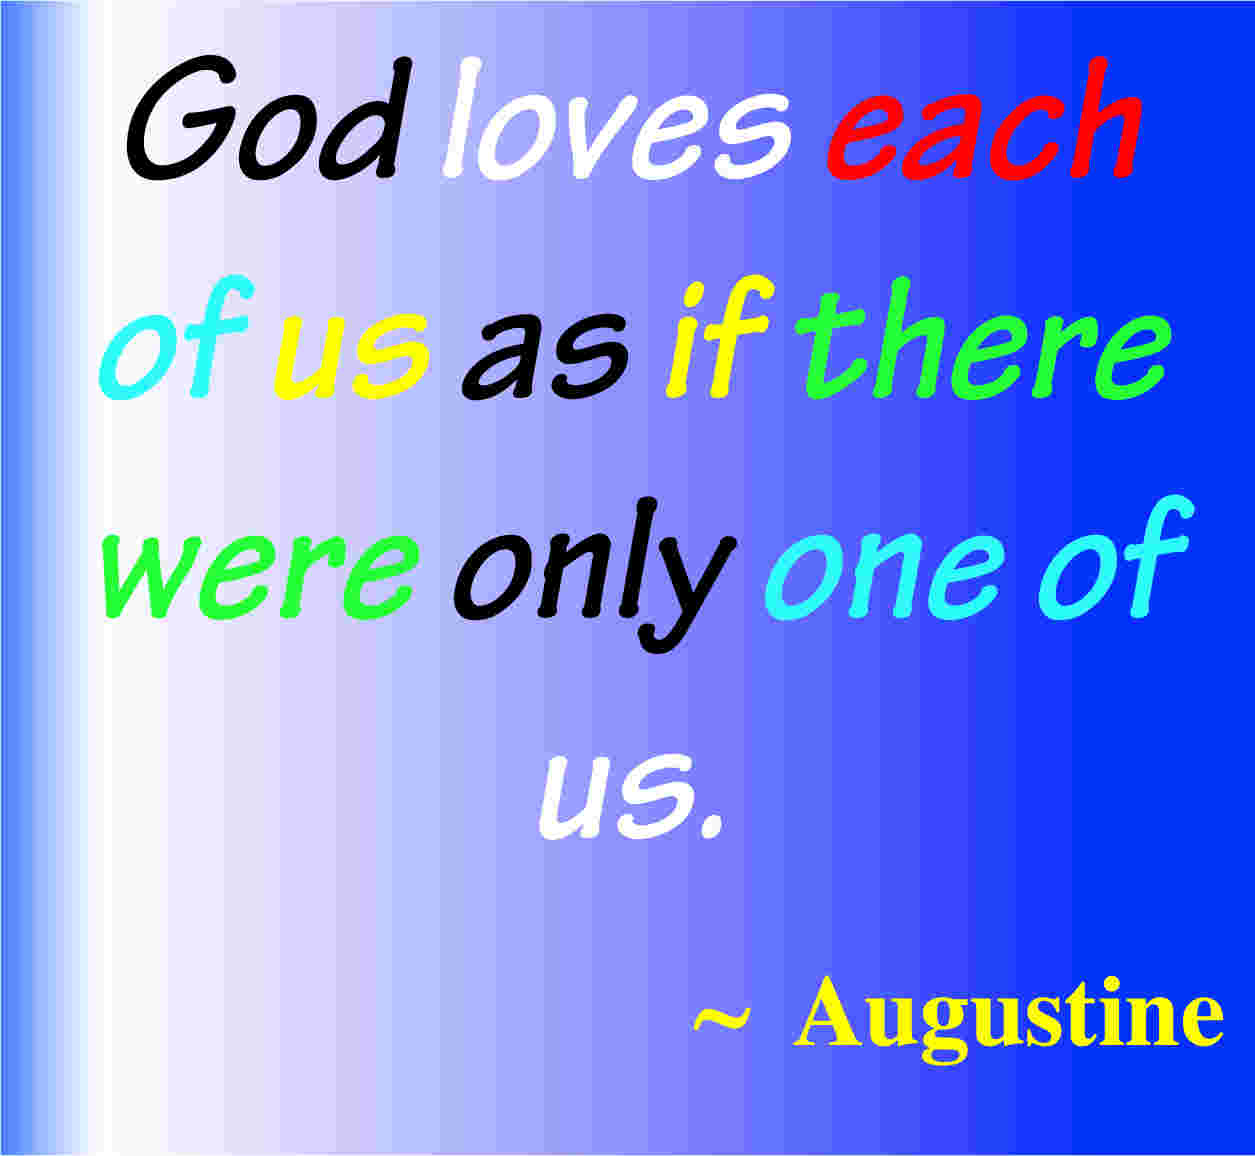 Love Quotes From The Bible Interesting 20 Inspirational Bible Verses About God's Love